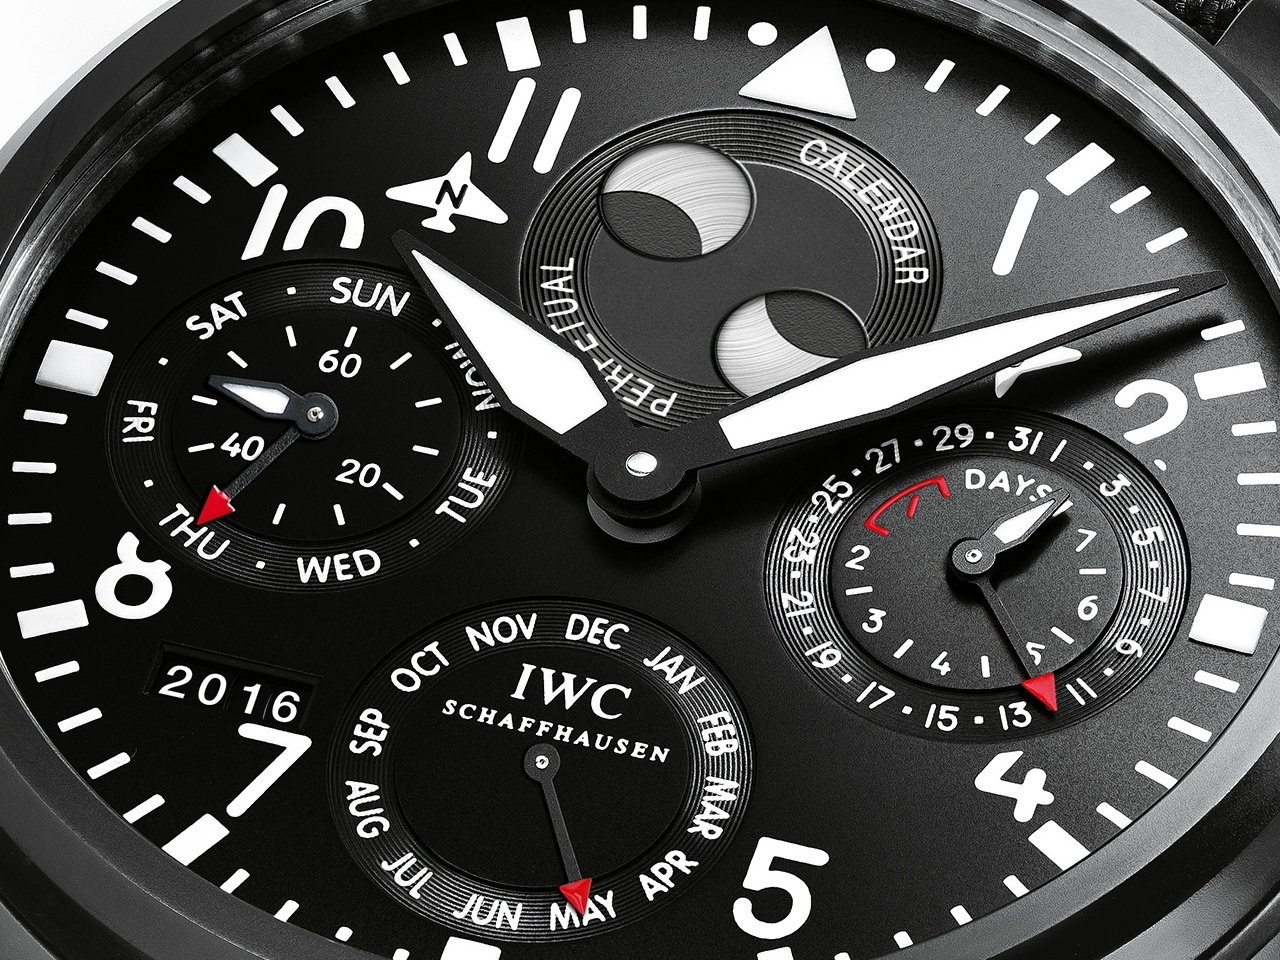 SIHH-2016-IWC-Big-Pilot-Watch-Perpetual-Calendar-TOP-GUN-IW502902-0-100_3